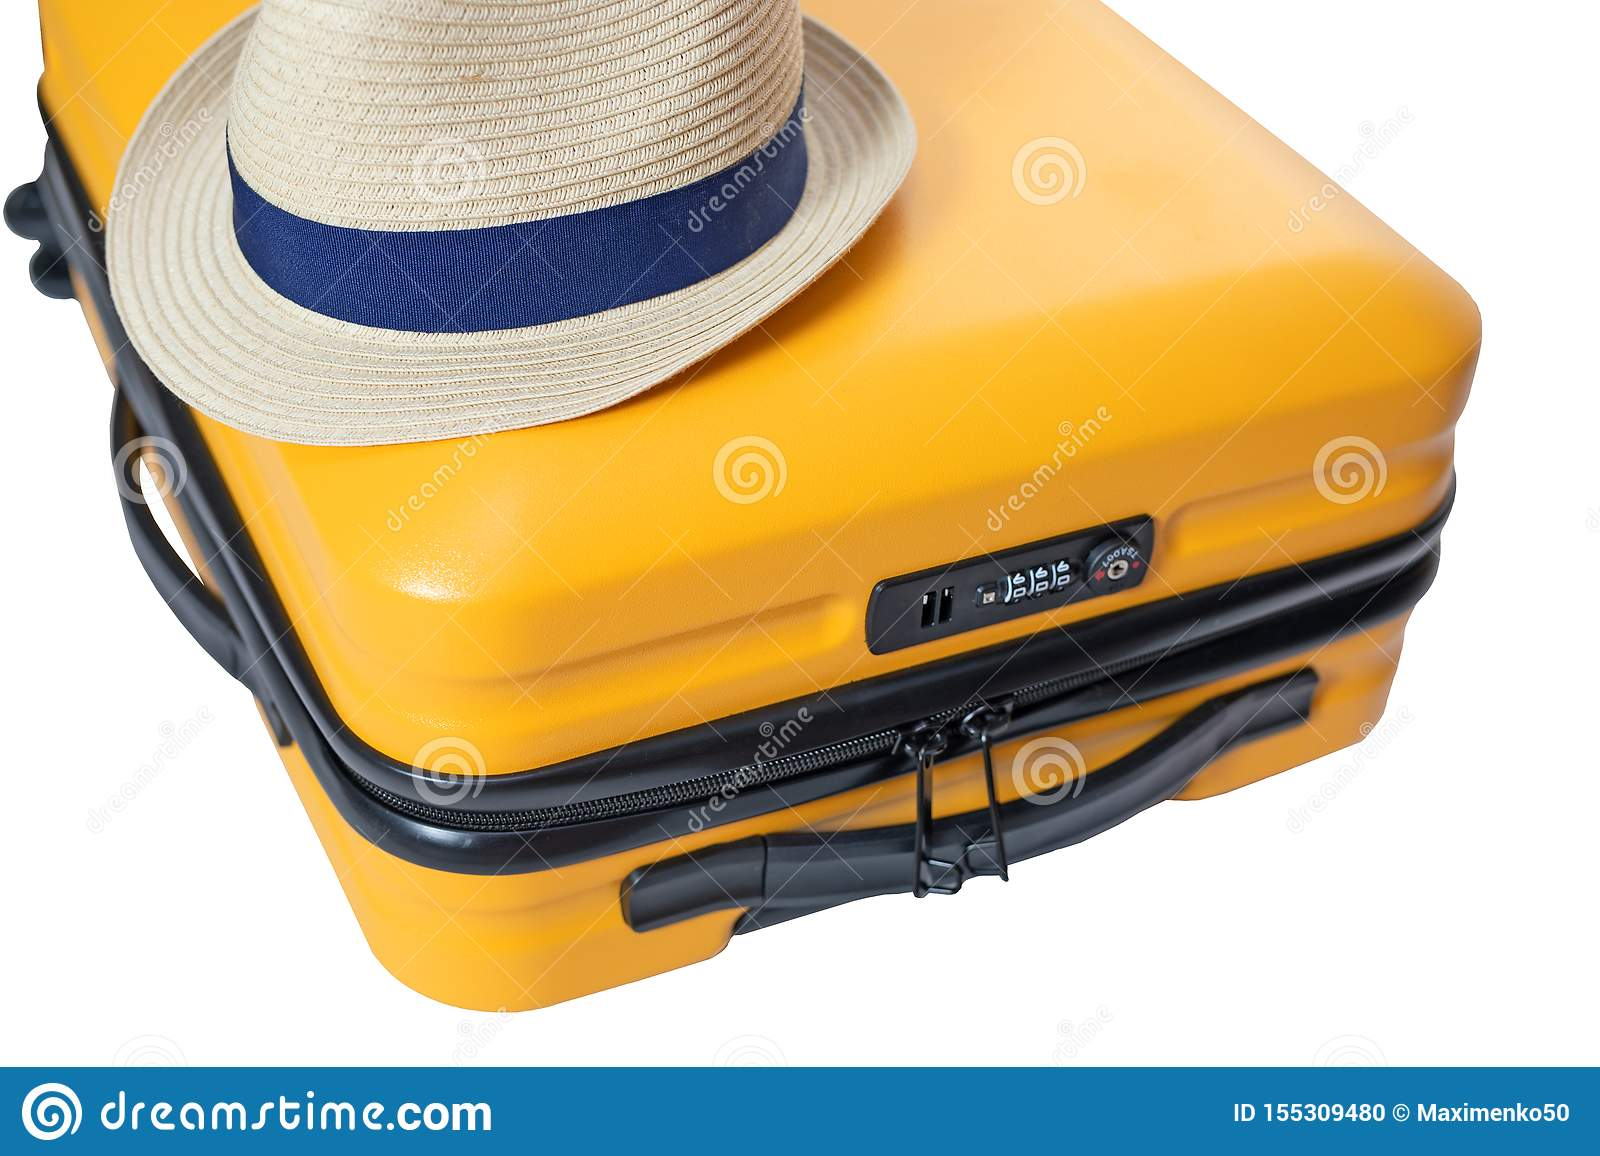 yellow suitcase with a combination lock with numbers 666 on it. Summertime - travel bag and straw hat on top